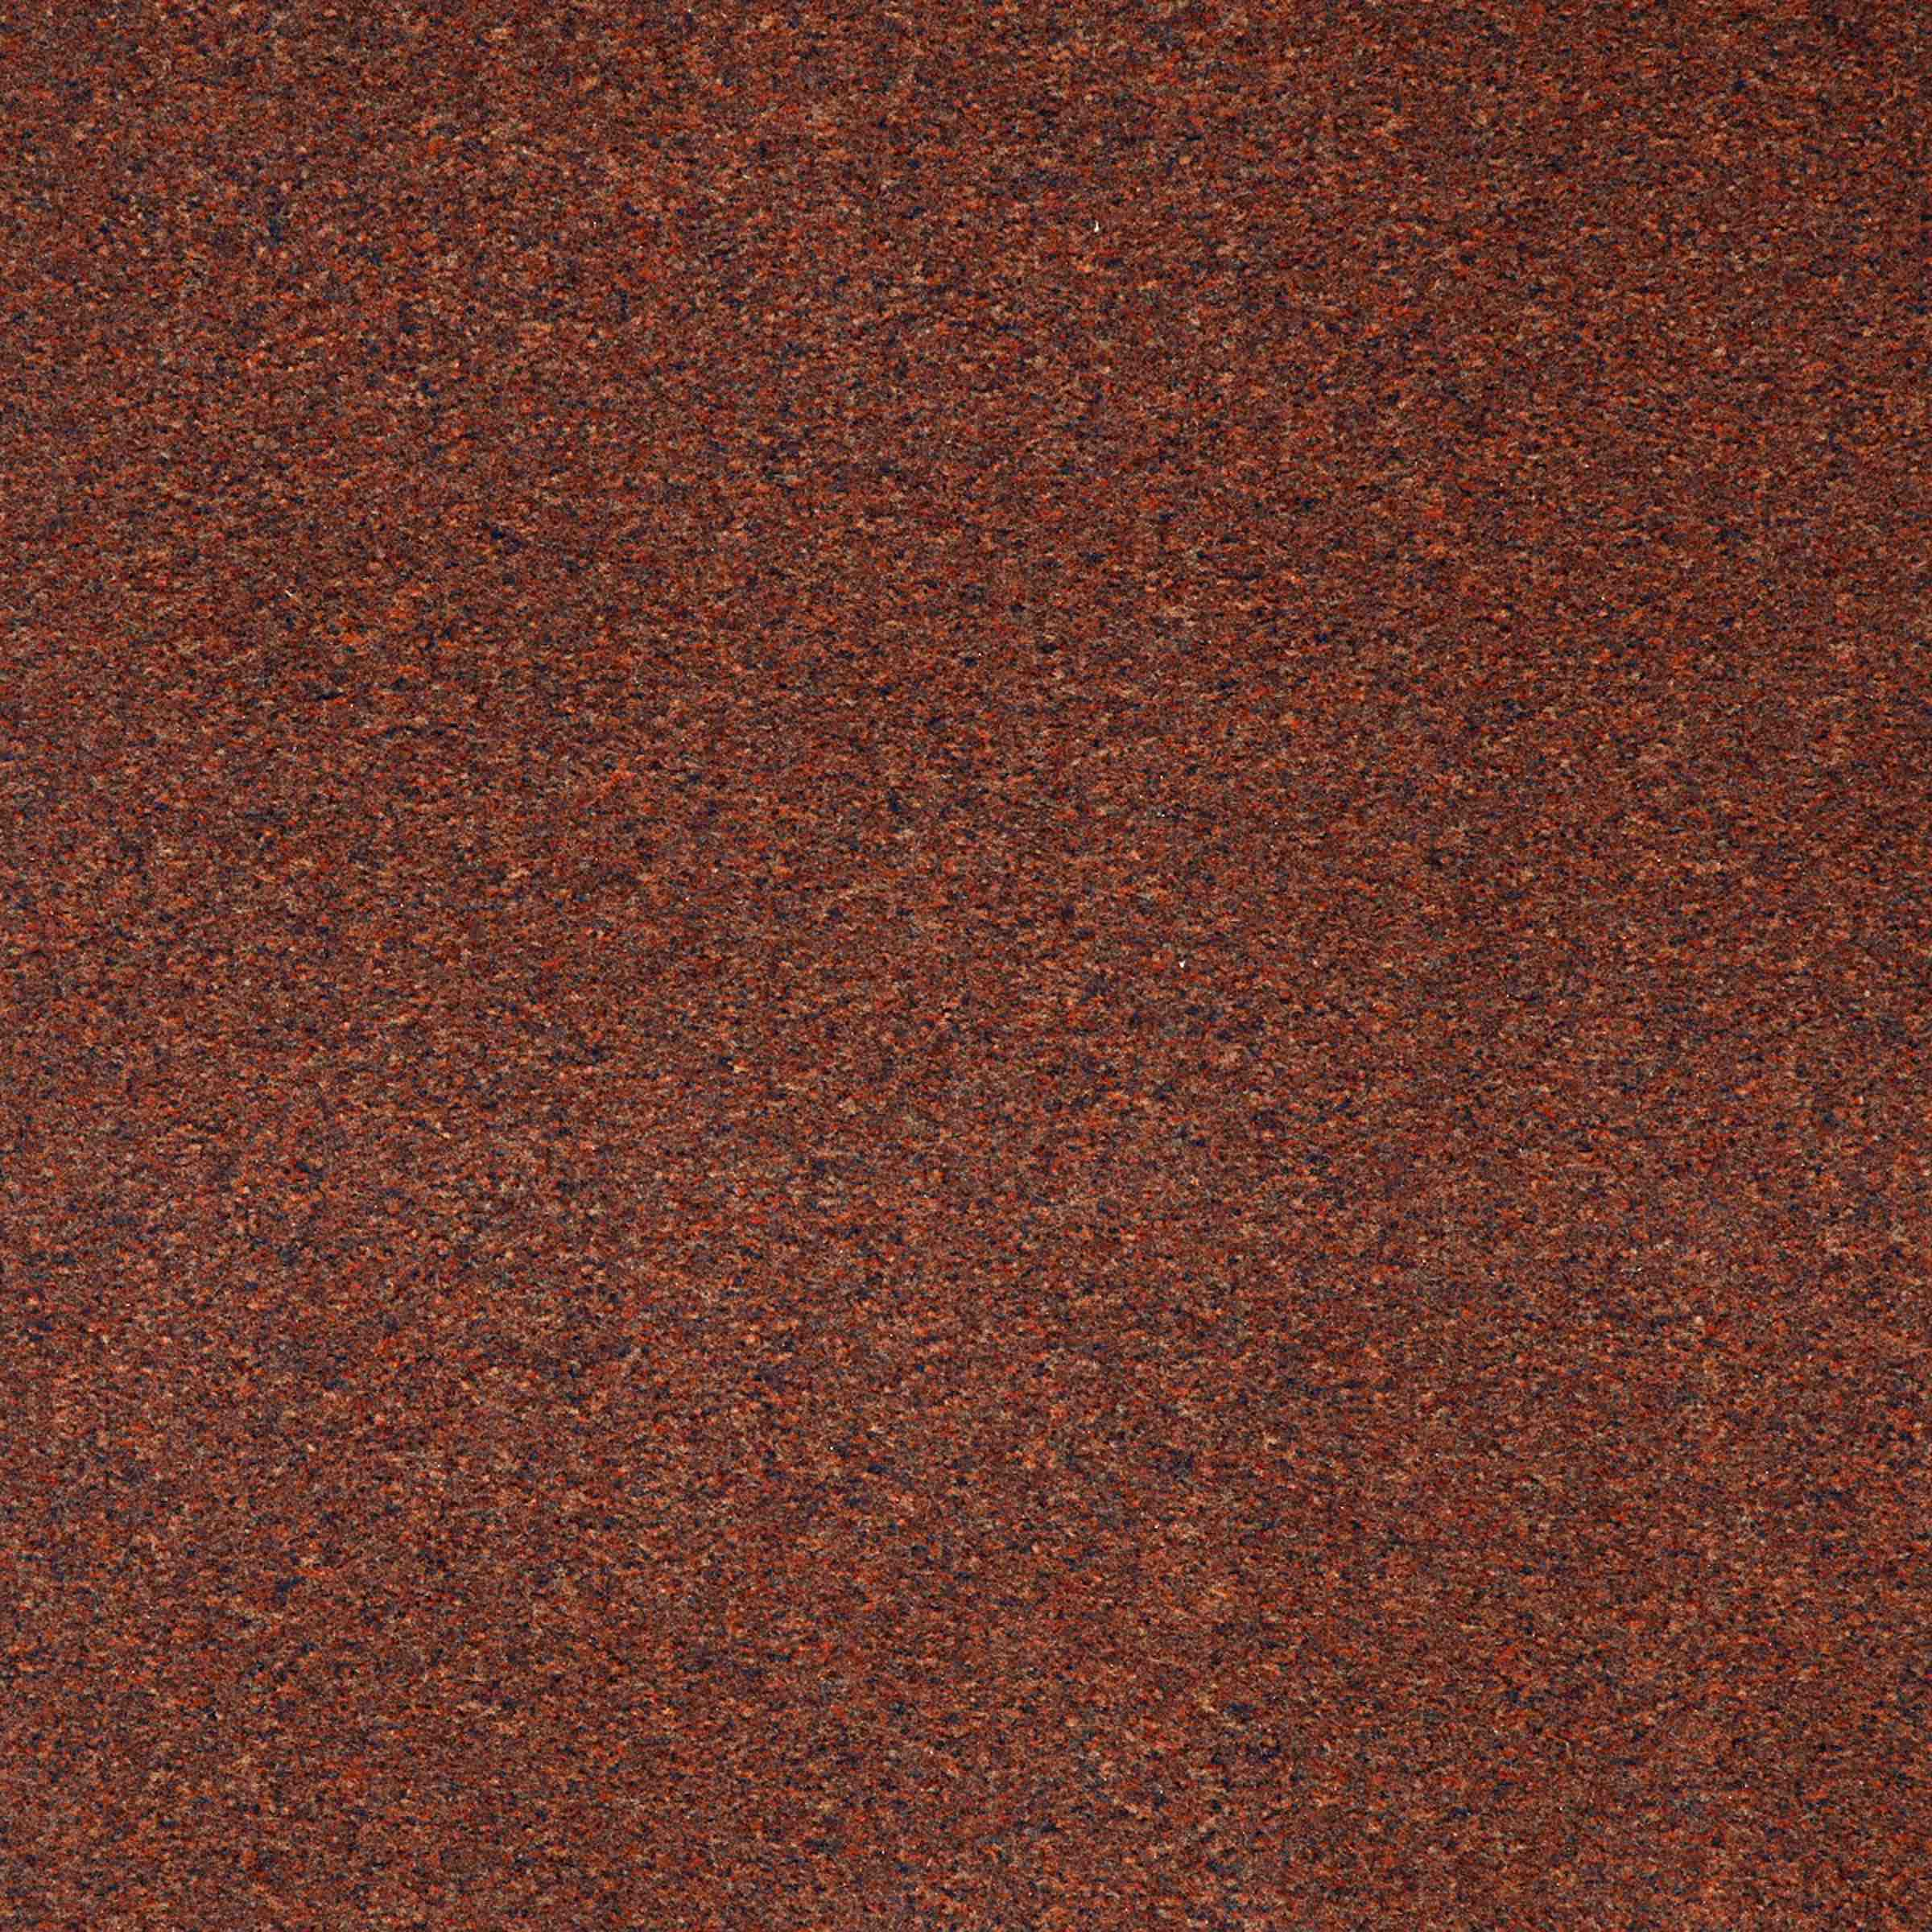 Workspace Cut Pile | Cayenne, 3038C | Paragon Carpet Tiles | Commercial Carpet Tiles